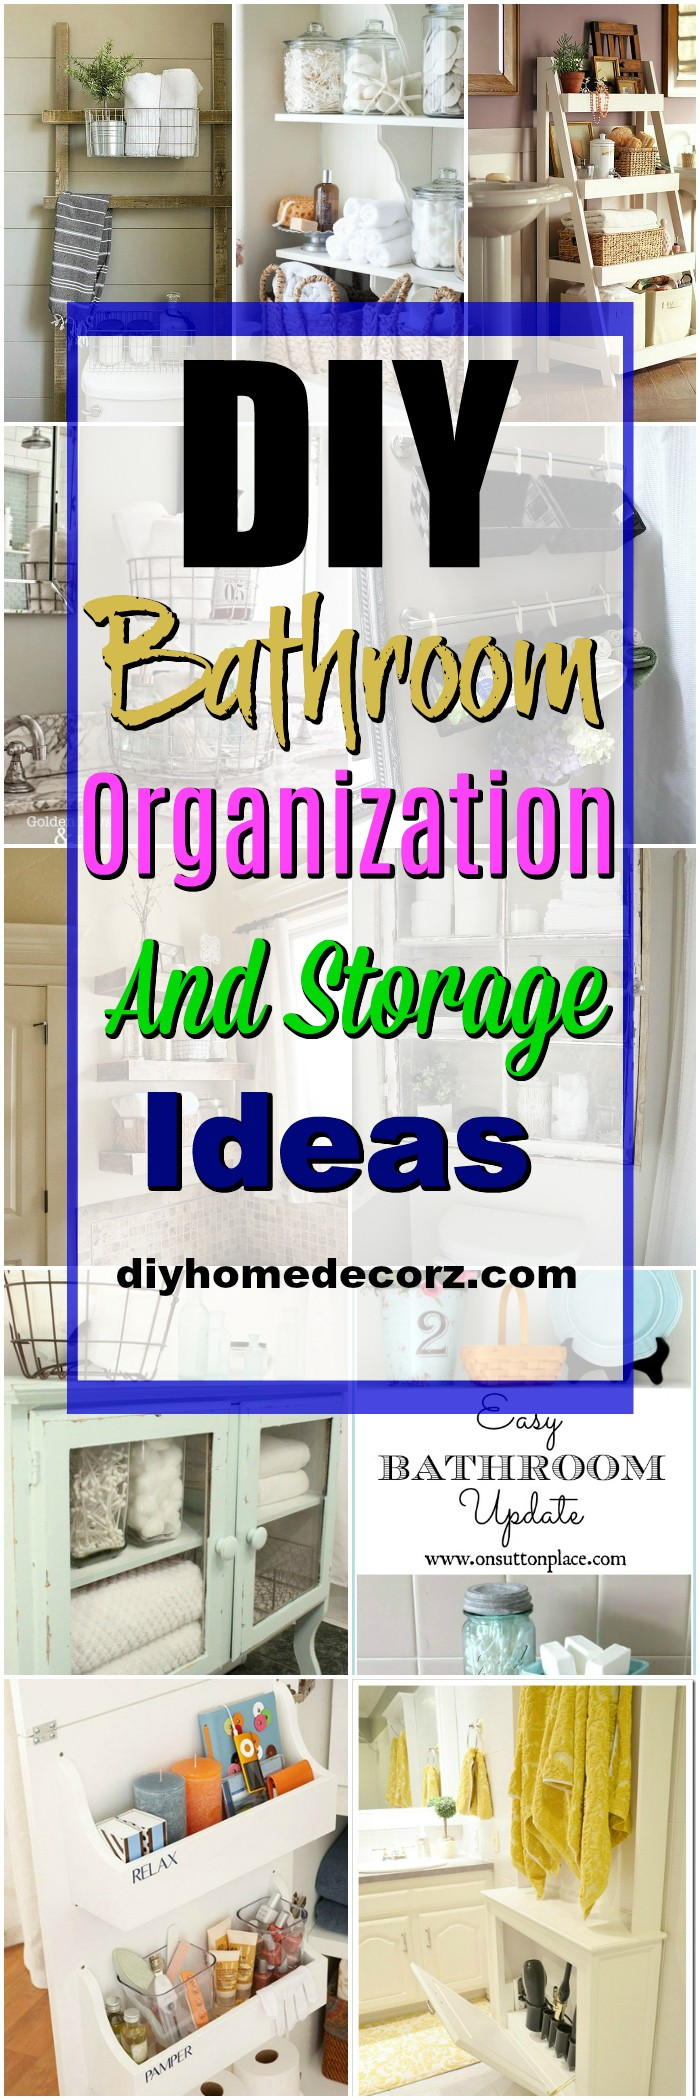 DIY Bathroom Organization 1 DIY Bathroom Organization And Storage Ideas